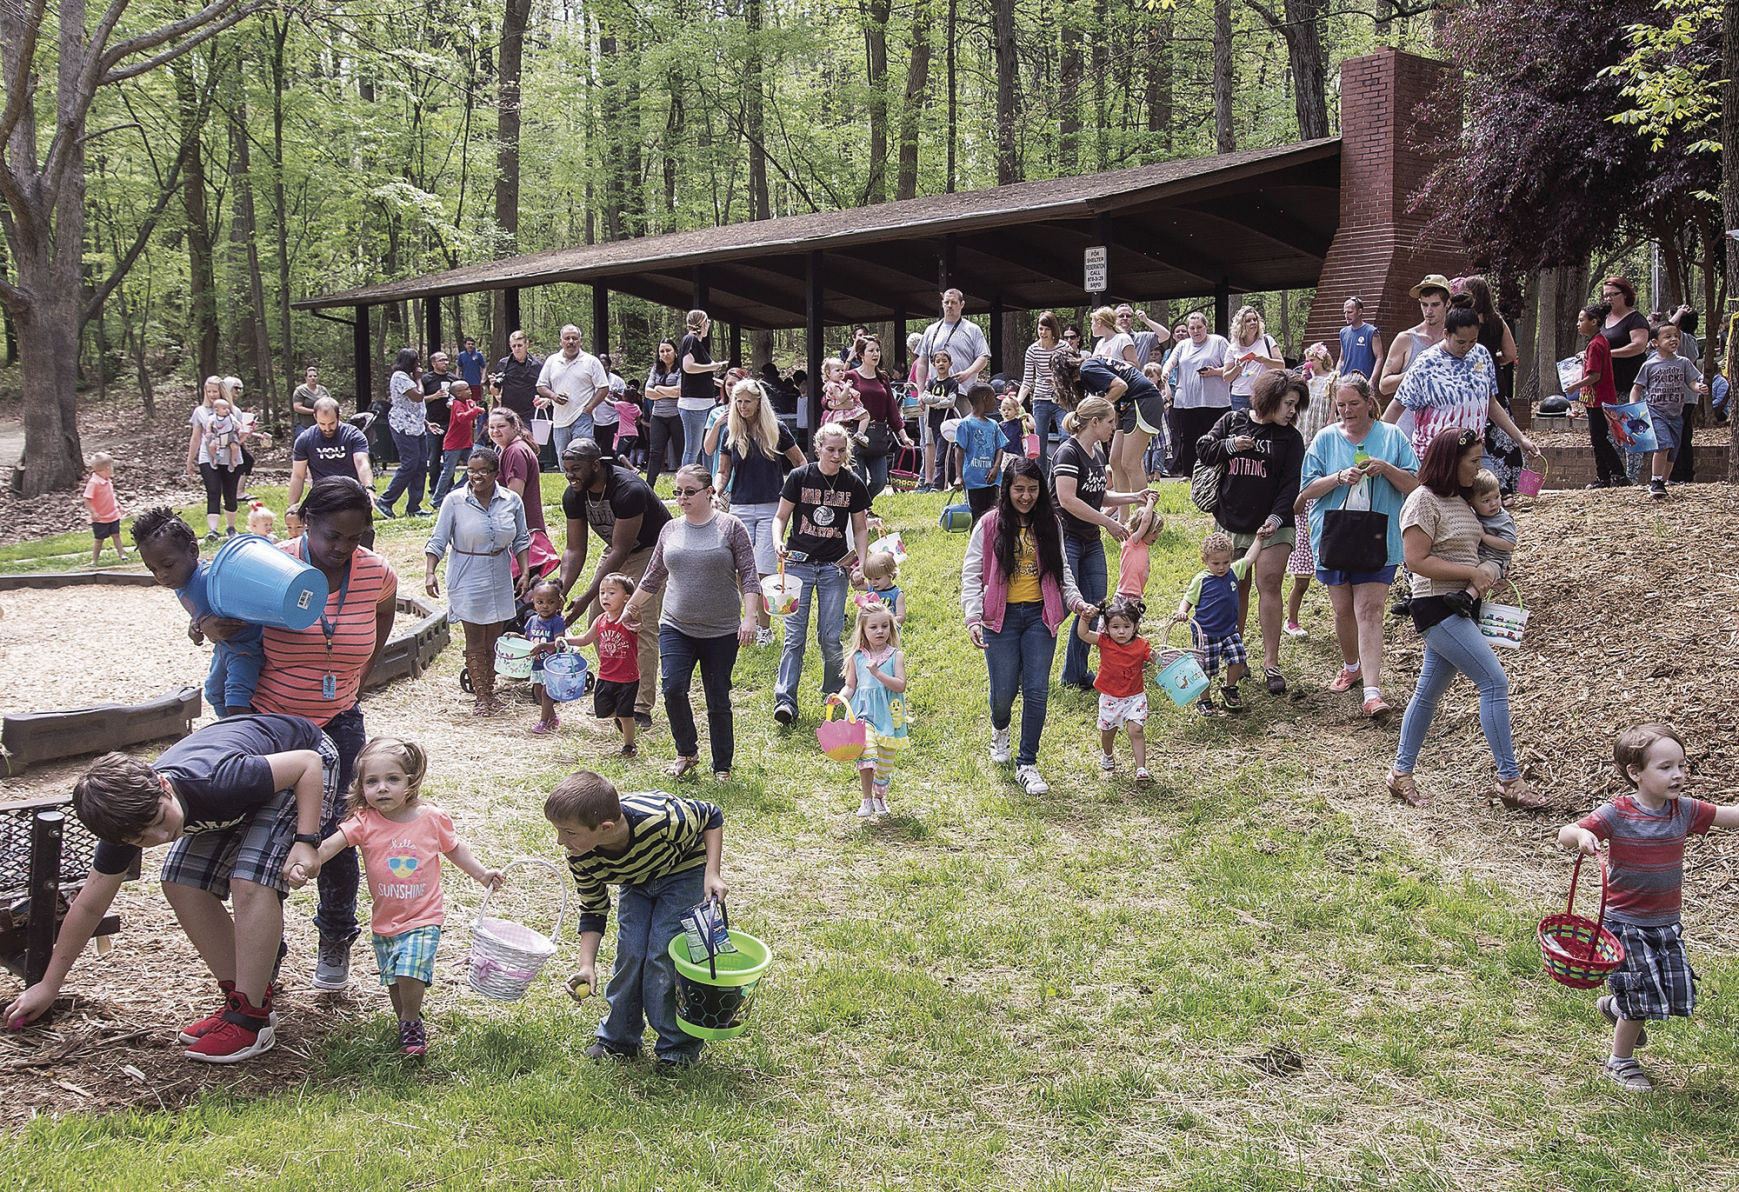 Strive's 5th Annual Easter Egg Hunt